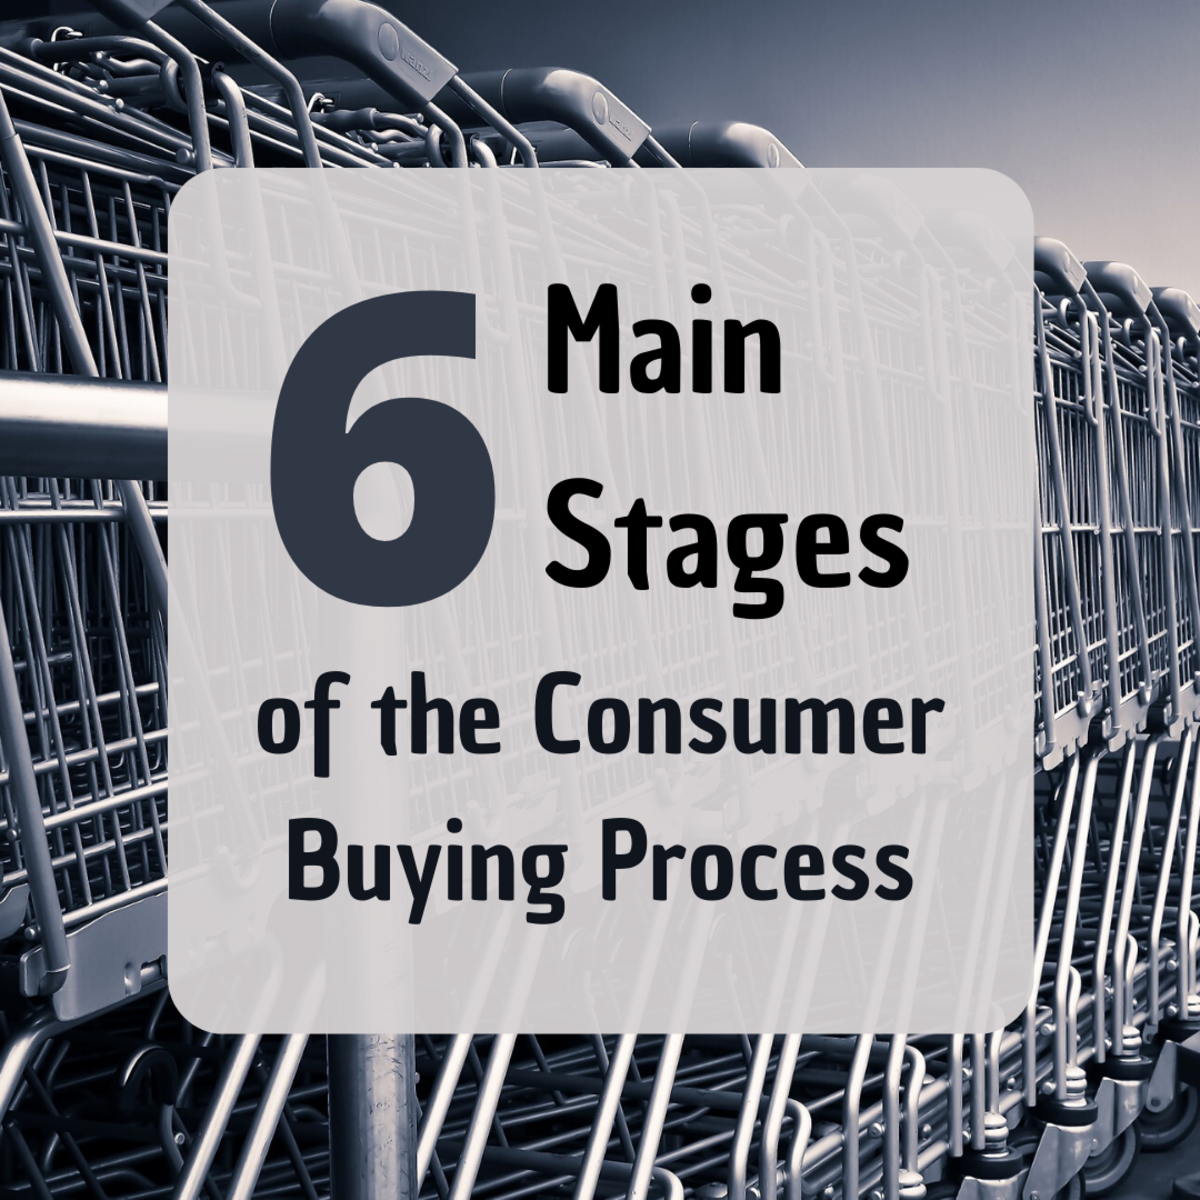 Learn more about consumer buying behavior, including the stages of the buying process.